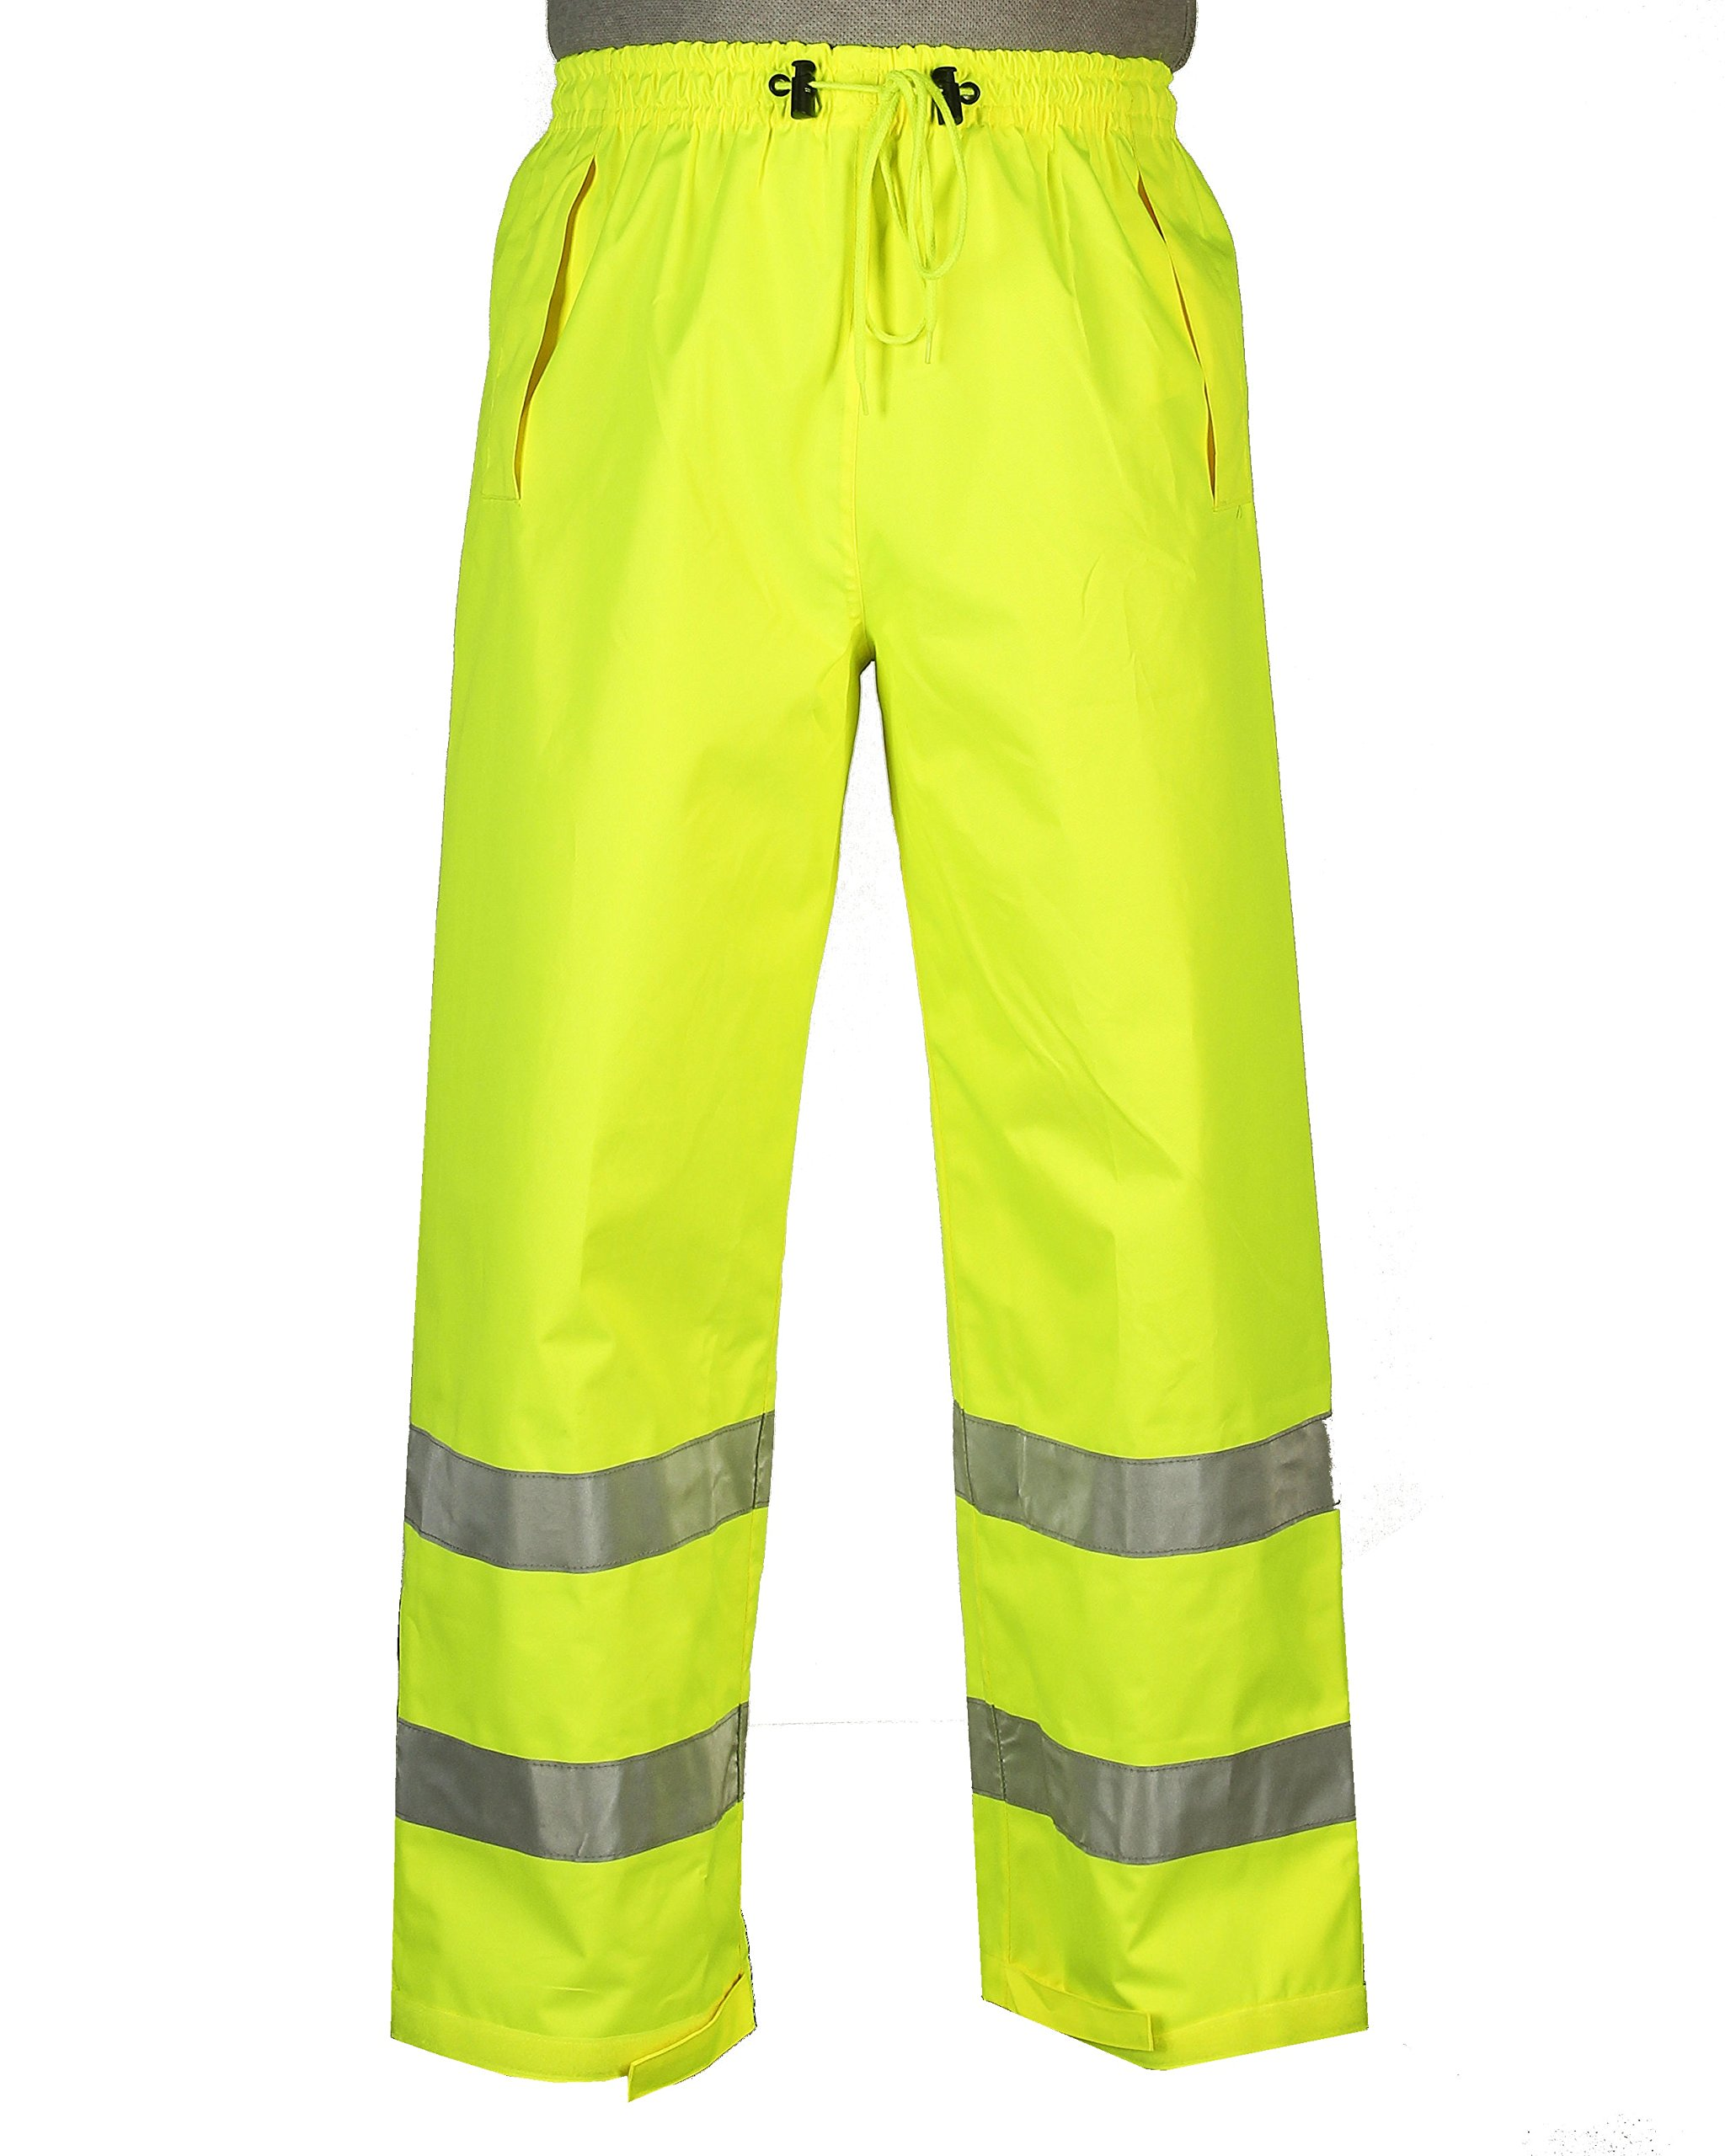 Safety Depot Lime Yellow Reflective Class E Safety Draw String Pants Water Resistant High Visibility and Light Weight 739c-3 (Large)